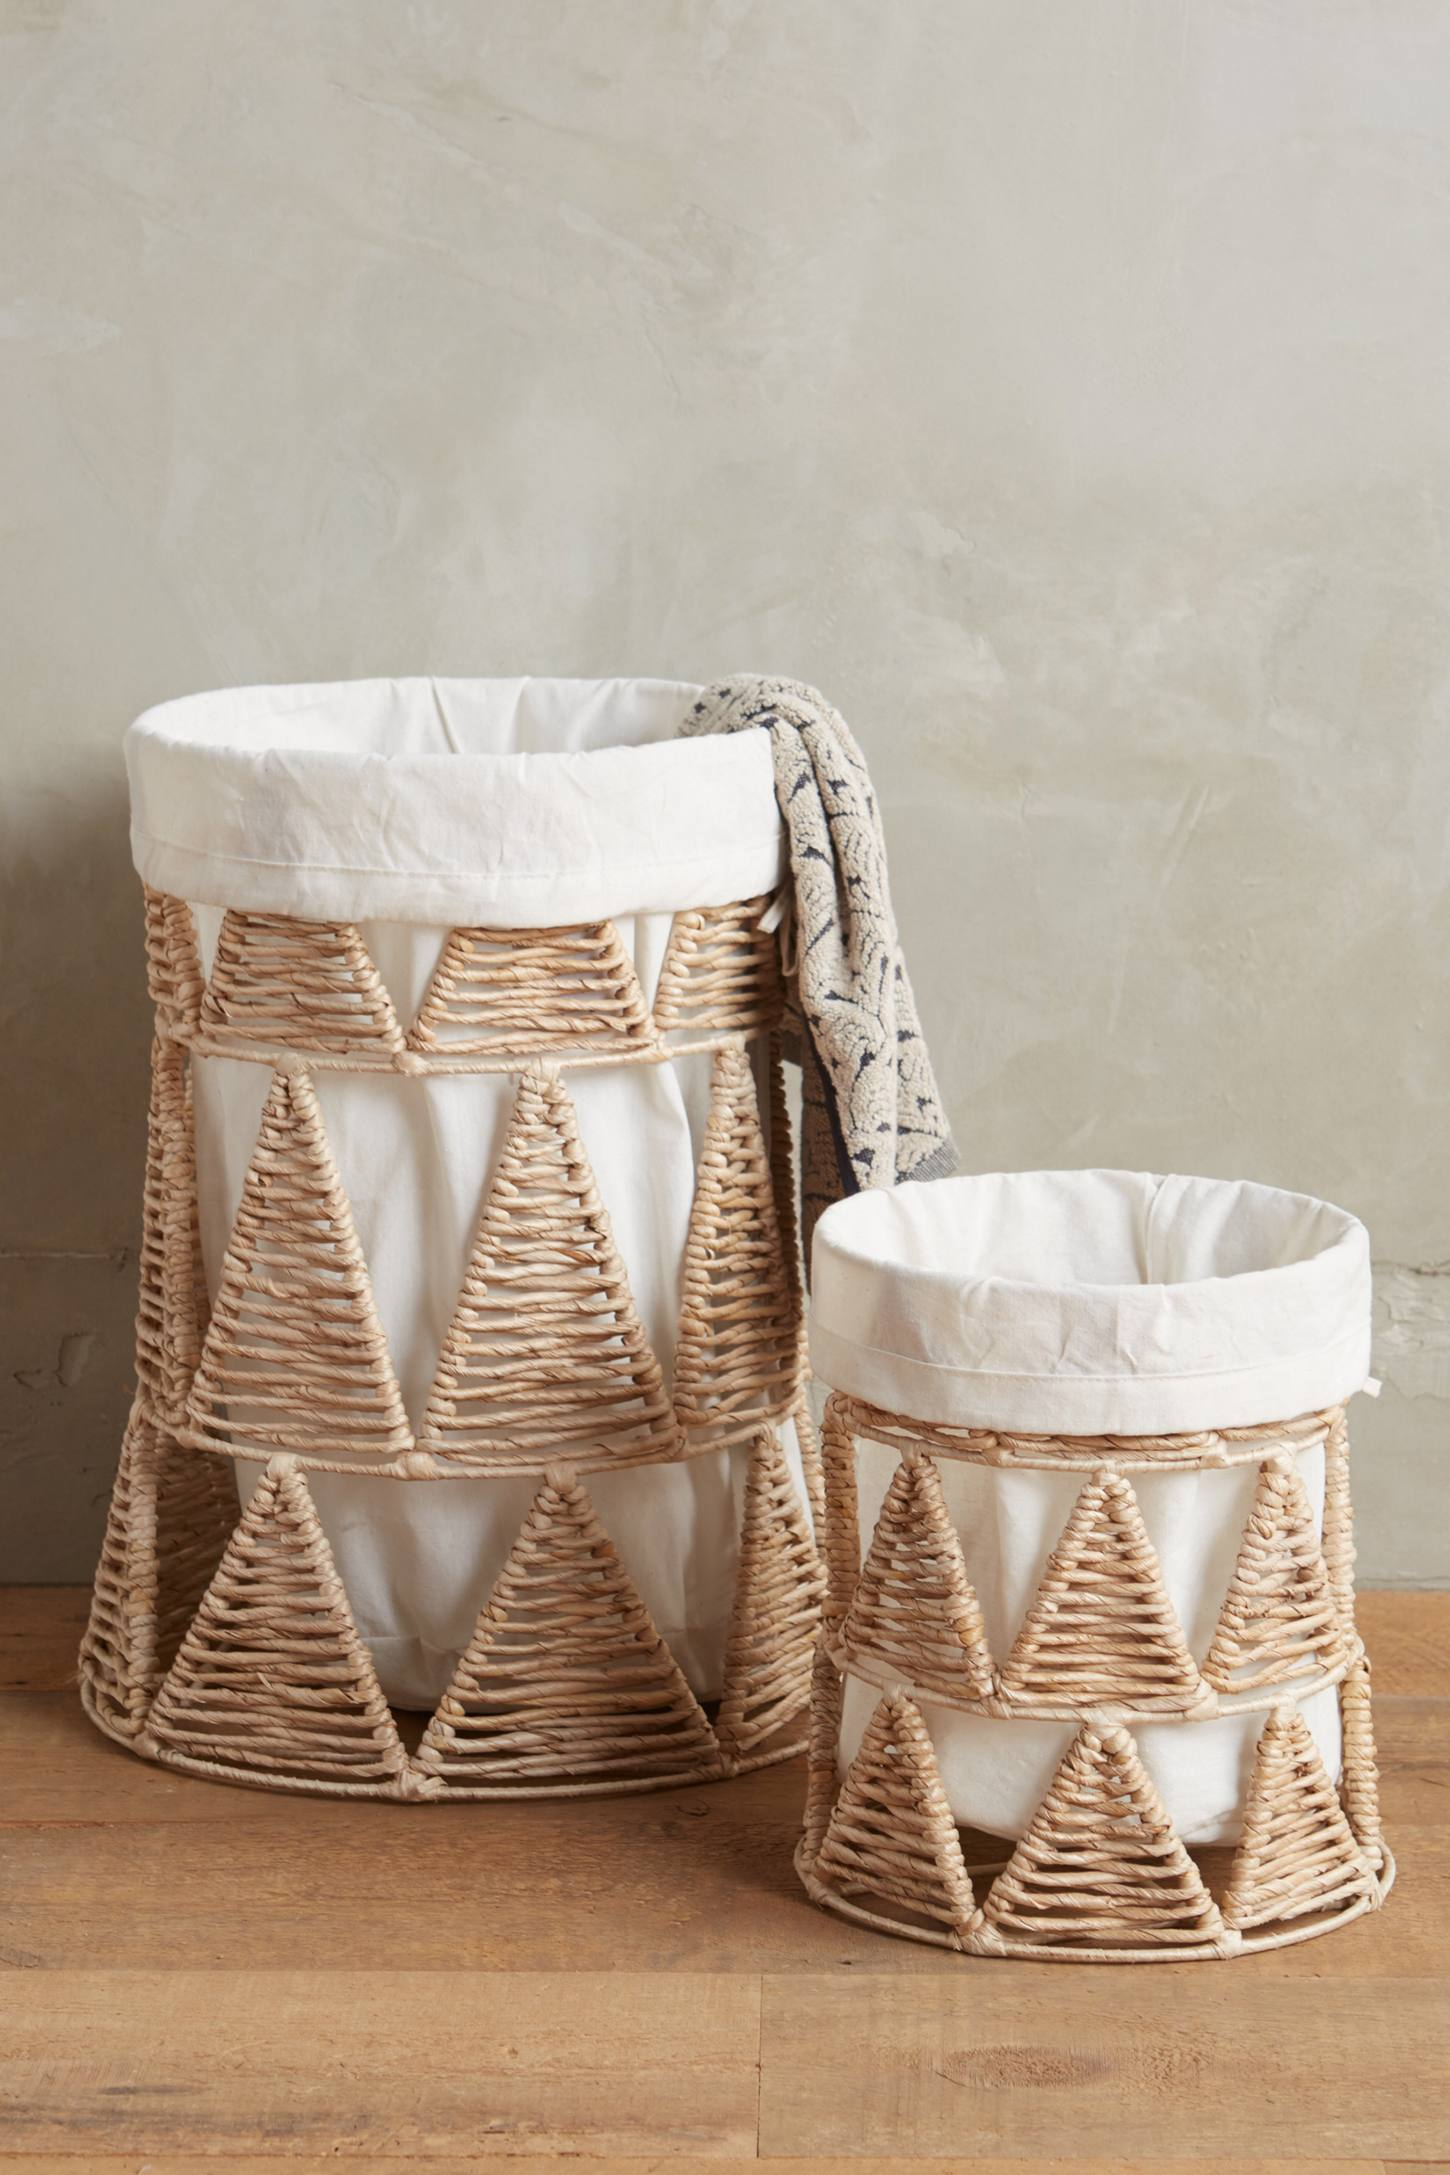 Woven-Wedge Baskets